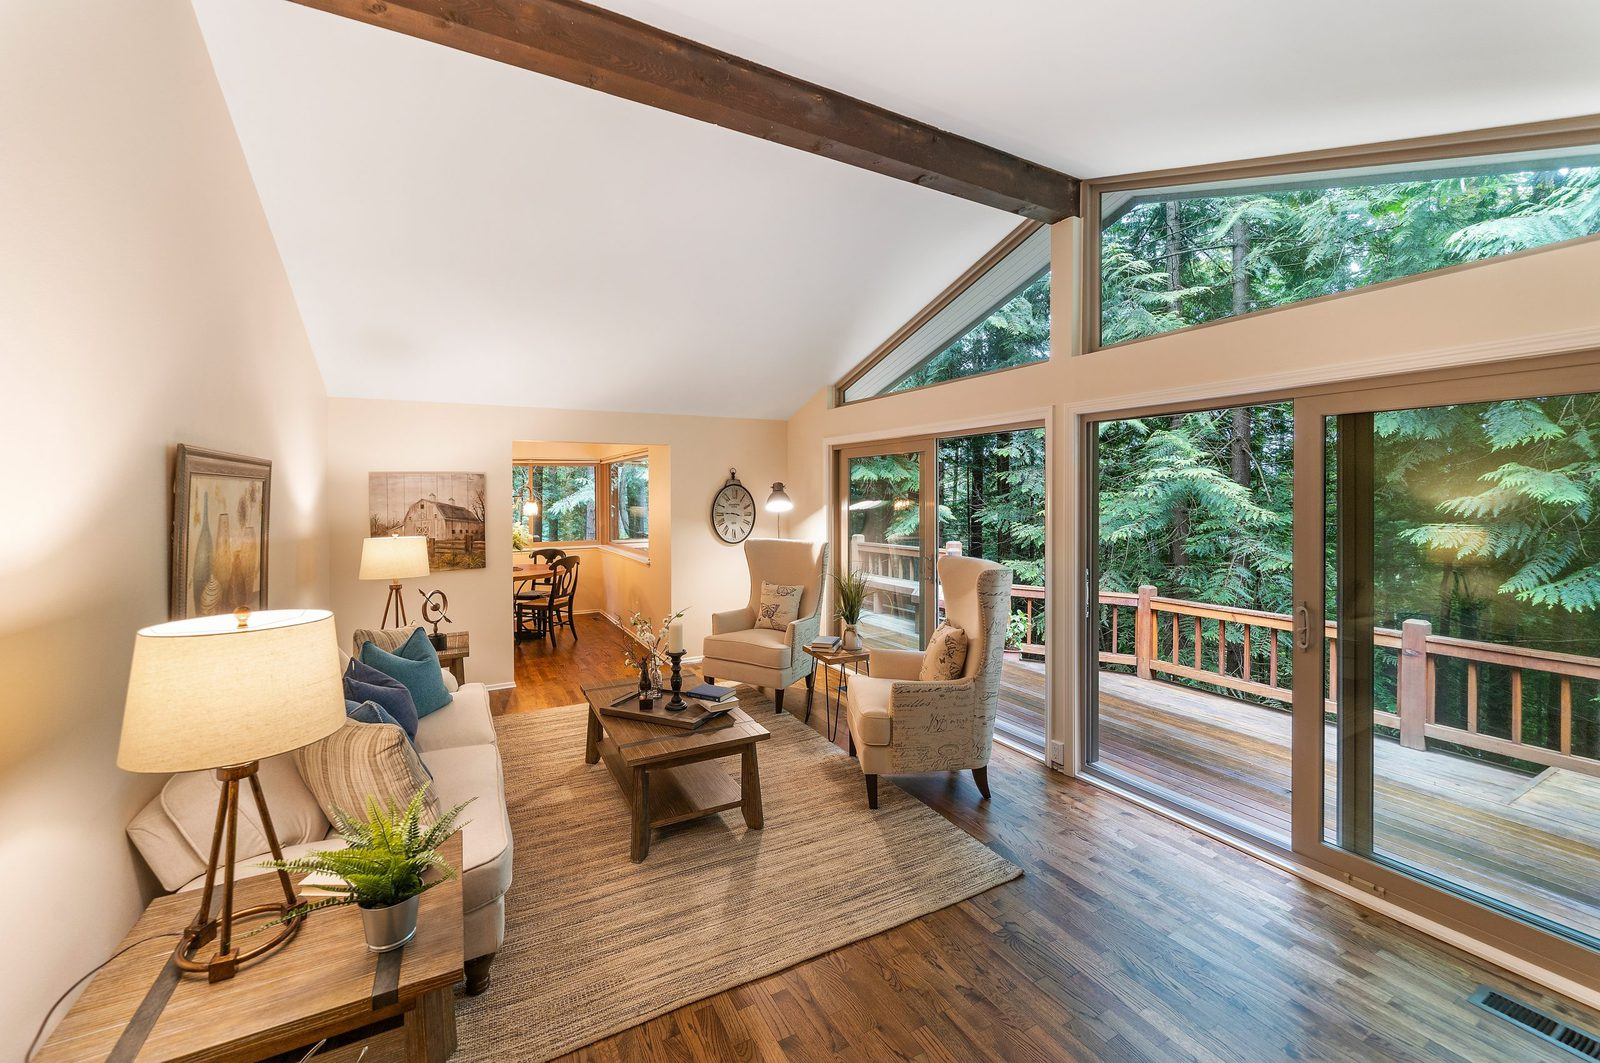 A 2017 Look At The Average Costs For 9 Popular Remodeling Projects In Northern Virginia